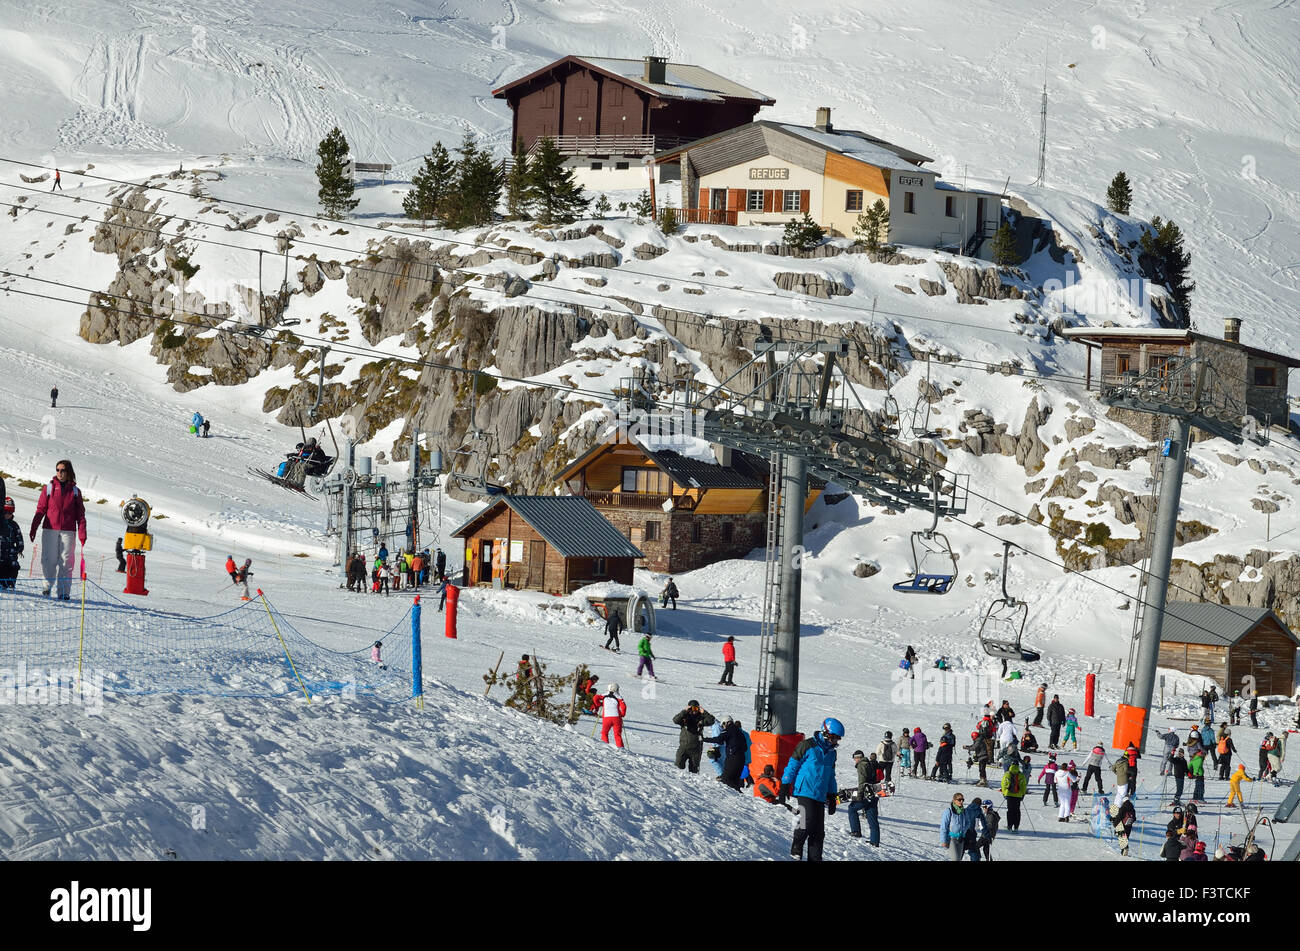 French ski resort Pierre Saint Martin - Stock Image